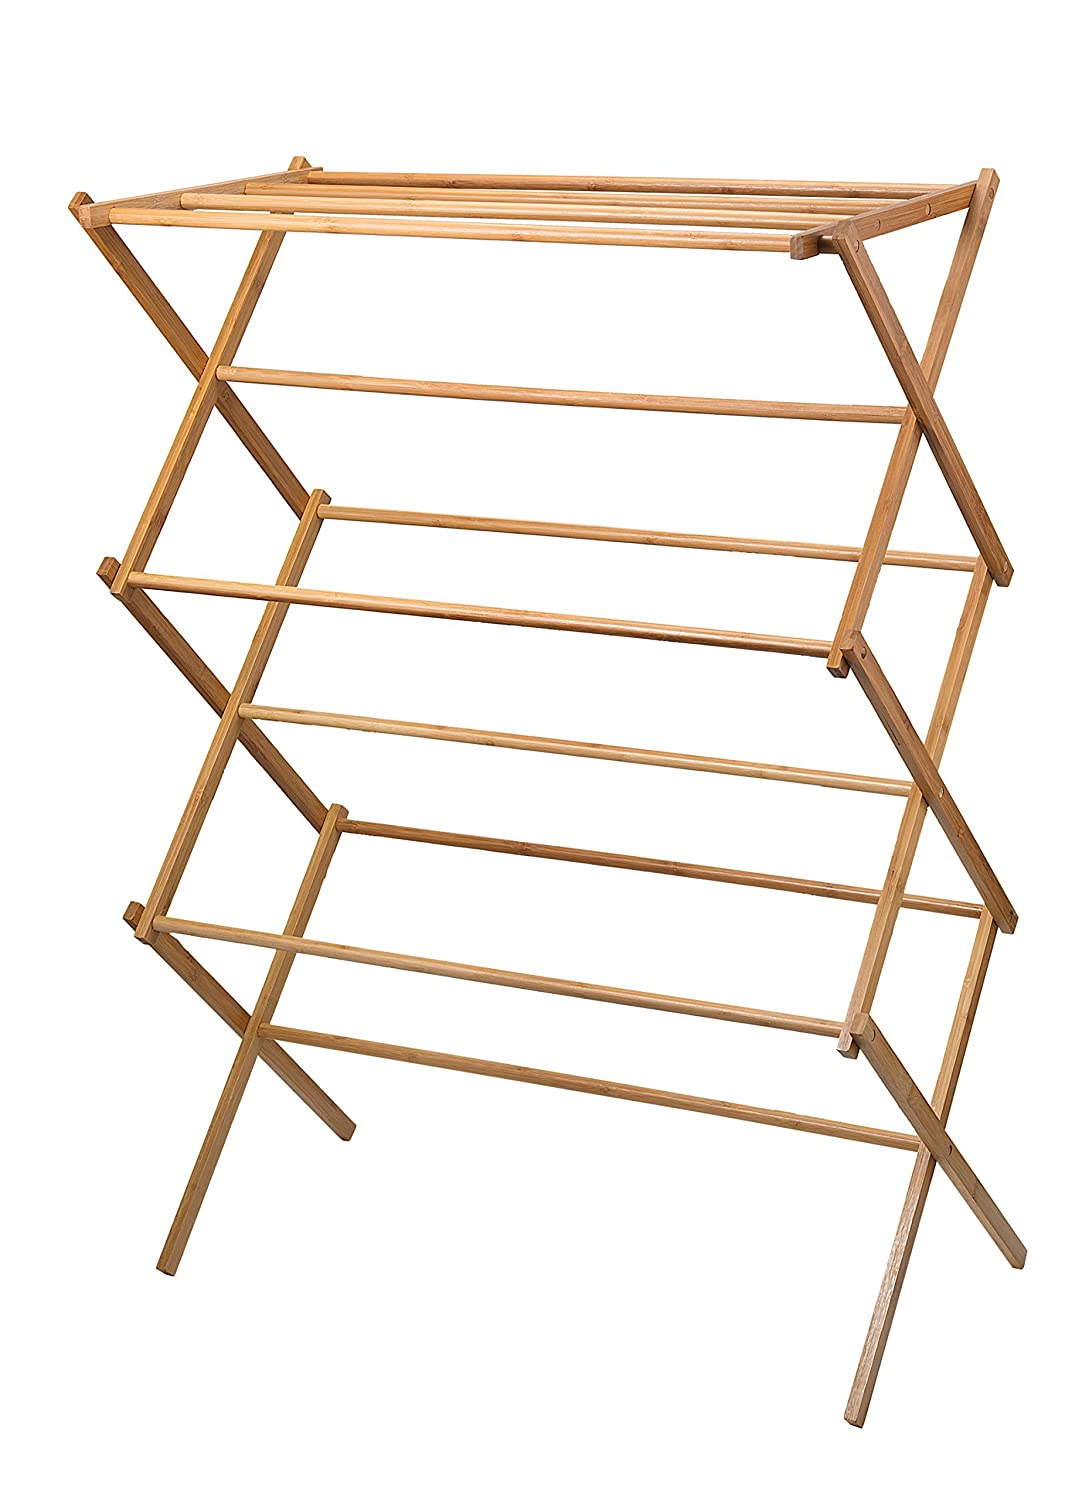 tag drying info sanalee nz wooden clothes hockey plans dryer rack